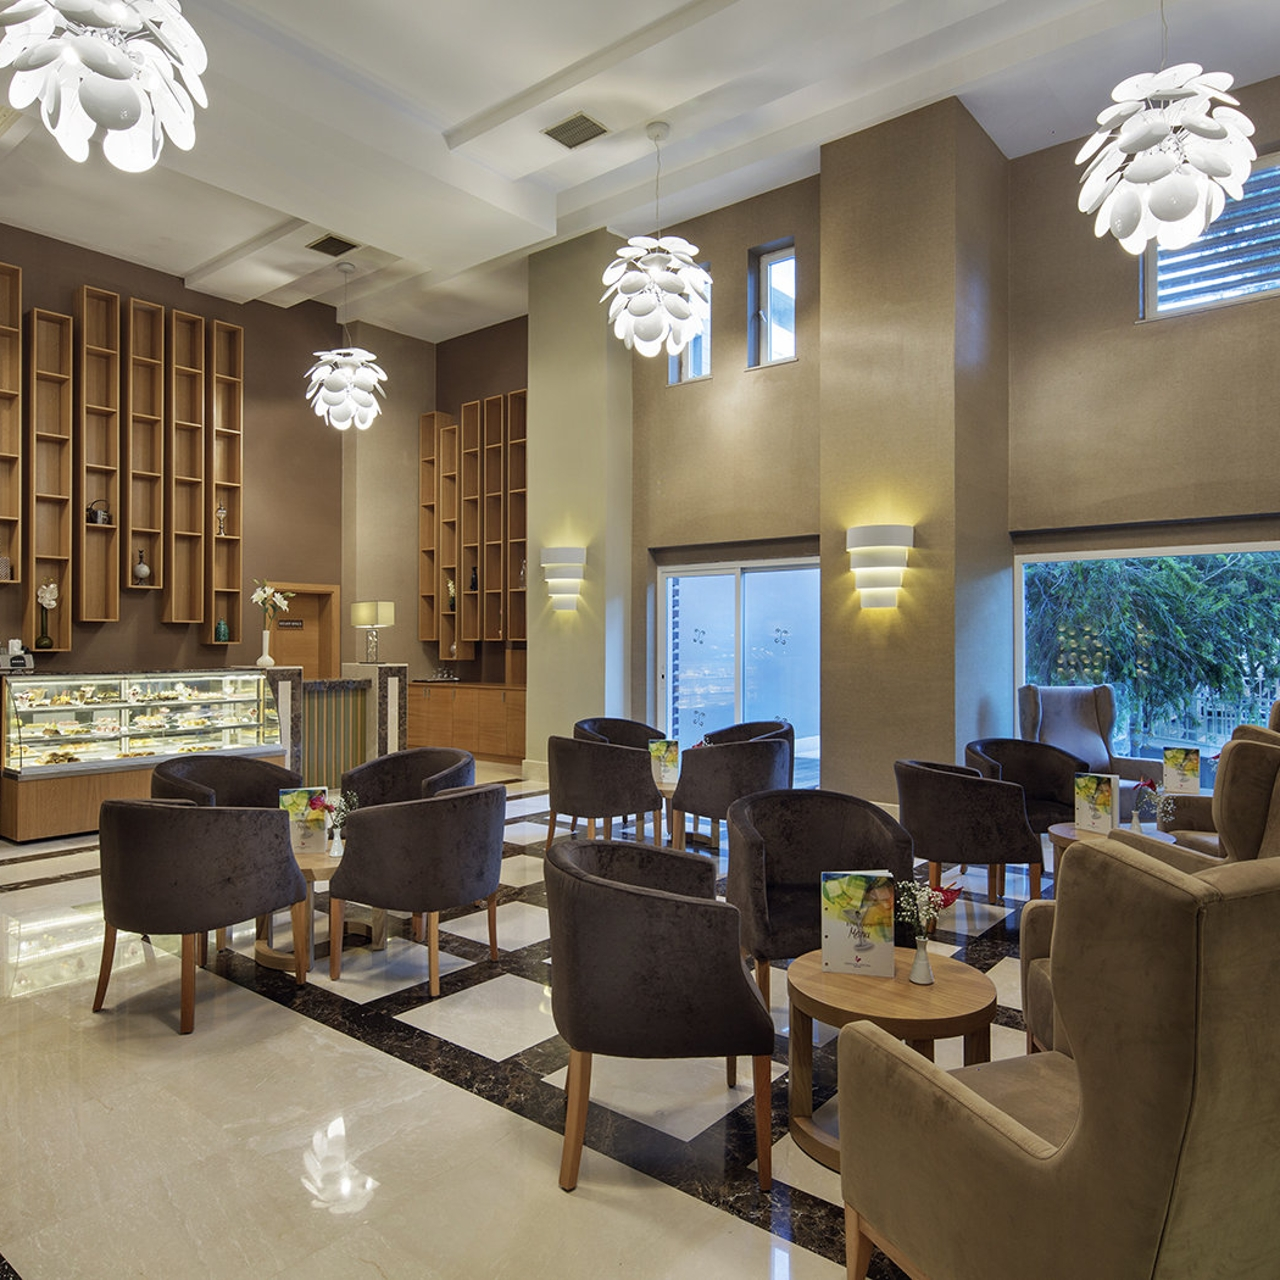 Hotel Papillon Ayscha Belek At Hrs With Free Services